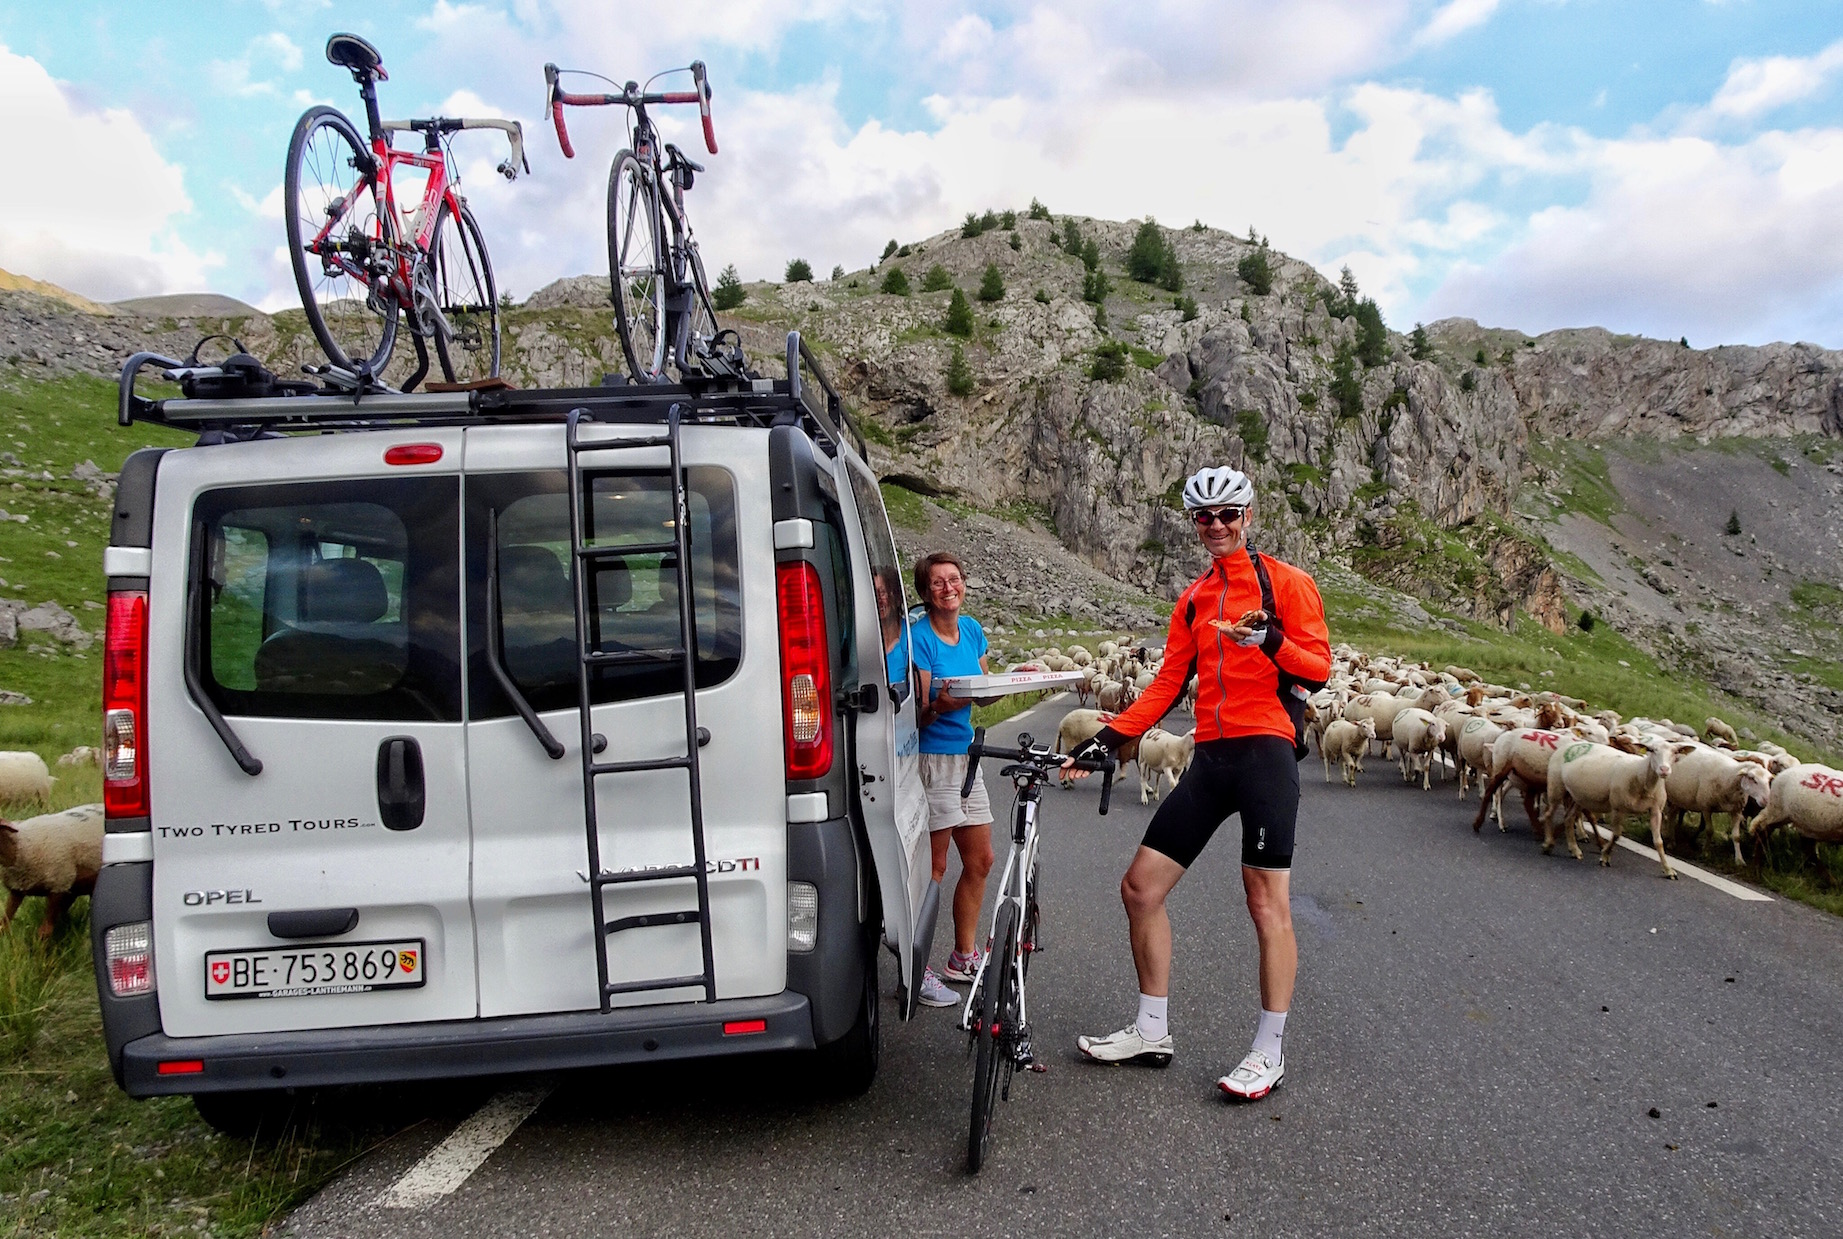 That moment when you've been riding your bike for 18 hours and your support team drives a 50km round trip to bring you pizza! Even better, the road is blocked by sheep, so you have time to savour it!!! Two Tyred Tours - undoubtedly the best bespoke cycle guides in the world!